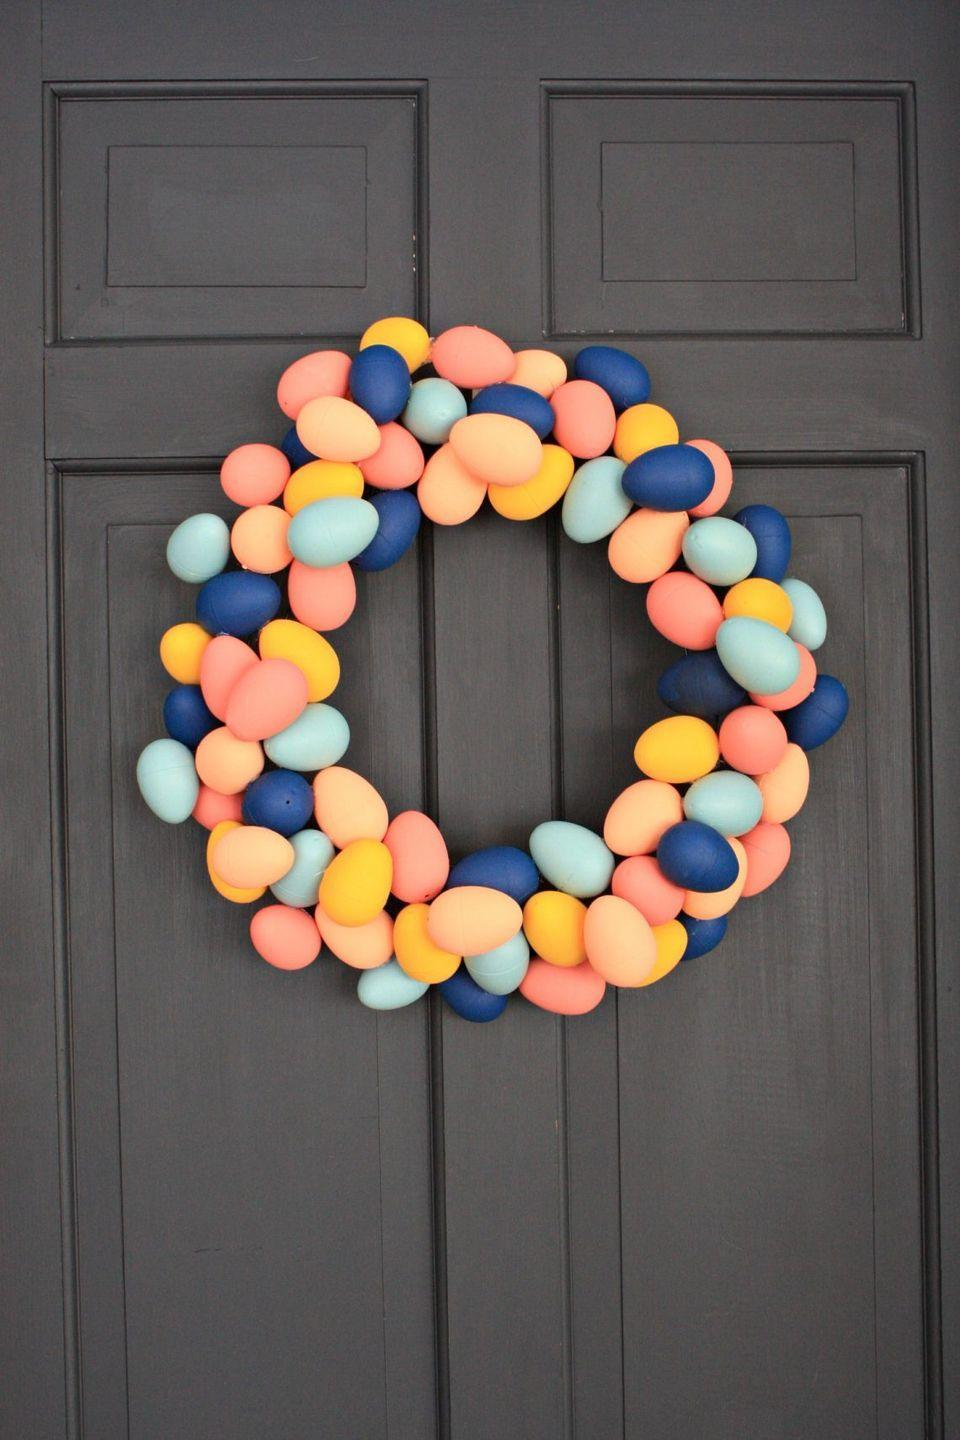 """<p>If you have some plastic eggs lying around the house, consider coating them in pretty paint colors and attaching them to a wreath. </p><p><strong>Get the tutorial at <a href=""""https://one-thousandoaks.com/diy-egg-wreath-for-spring"""" rel=""""nofollow noopener"""" target=""""_blank"""" data-ylk=""""slk:One Thousand Oaks"""" class=""""link rapid-noclick-resp"""">One Thousand Oaks</a>.</strong></p><p><a class=""""link rapid-noclick-resp"""" href=""""https://go.redirectingat.com?id=74968X1596630&url=https%3A%2F%2Fwww.walmart.com%2Fip%2FExpert-Grill-12-Natural-Bamboo-Skewers-for-Grilling-100-Count%2F996635765&sref=https%3A%2F%2Fwww.thepioneerwoman.com%2Fhome-lifestyle%2Fcrafts-diy%2Fg35698457%2Fdiy-easter-wreath-ideas%2F"""" rel=""""nofollow noopener"""" target=""""_blank"""" data-ylk=""""slk:SHOP WOODEN SKEWERS"""">SHOP WOODEN SKEWERS</a></p>"""